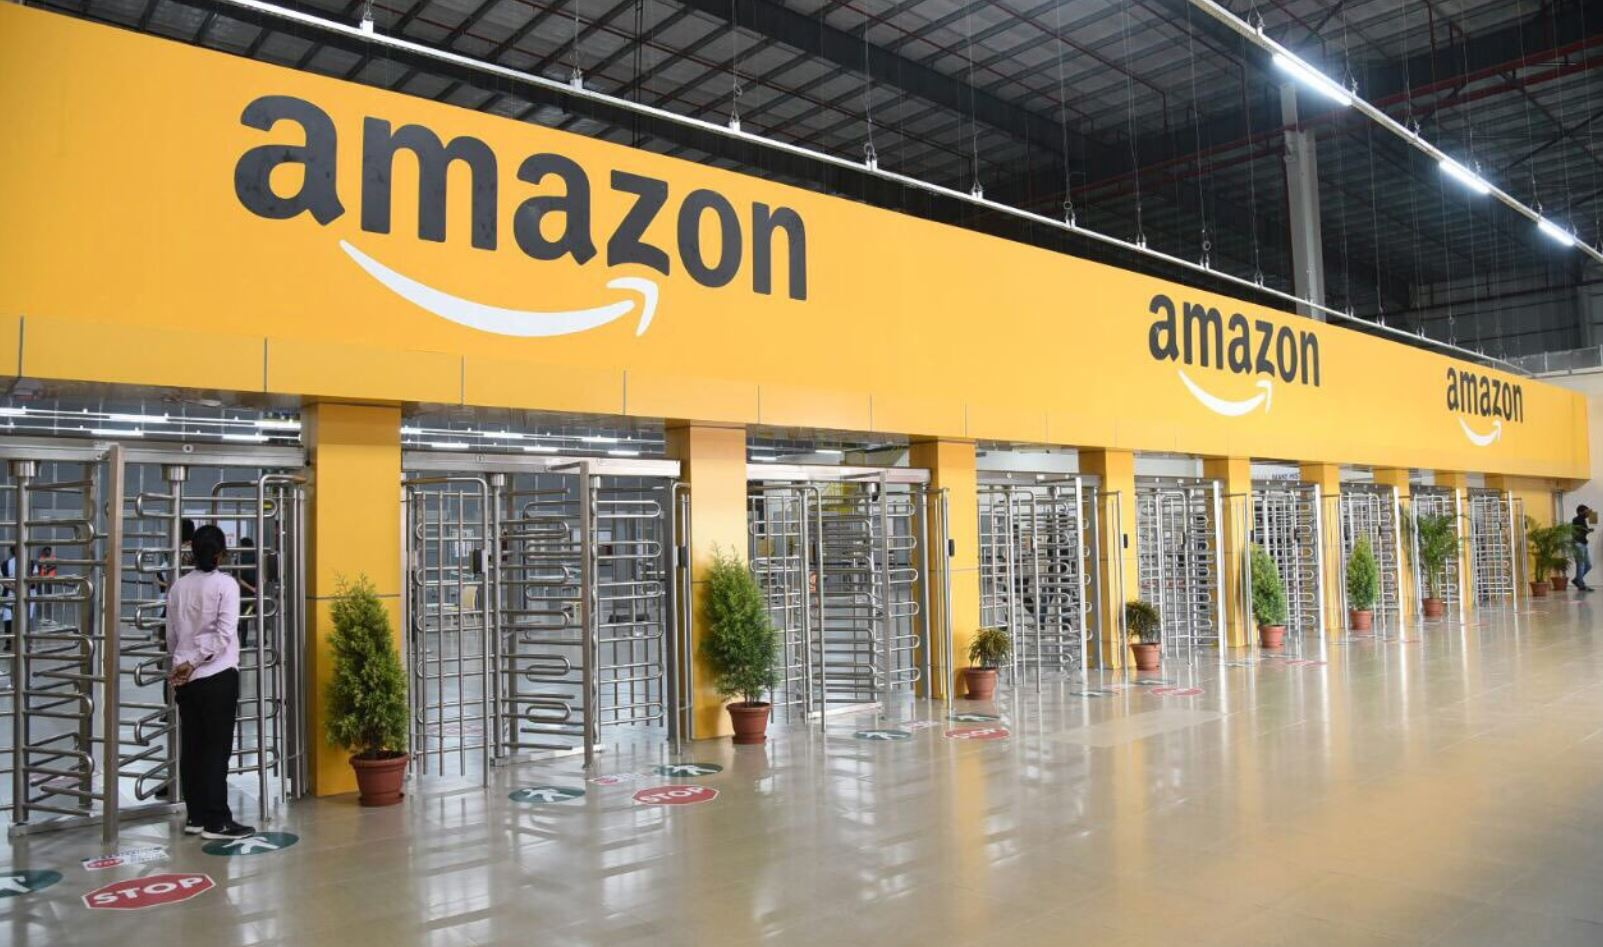 Amazon slowed investment into India due to protectionism – Wilbur Ross